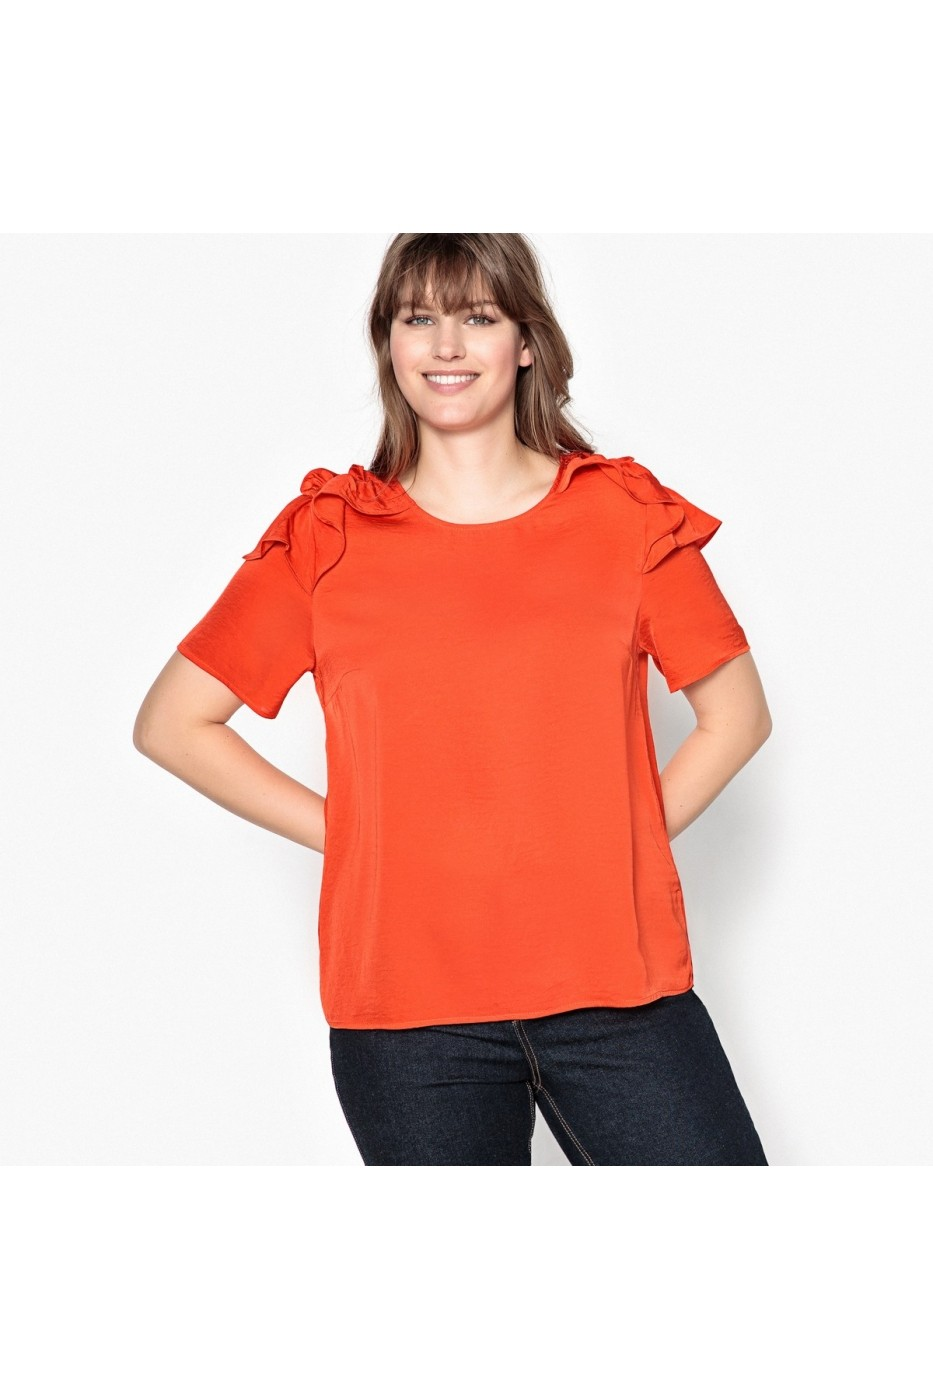 582751725b7 Блуза CASTALUNA LRD-GES847-orange оранжево - FashionUP!